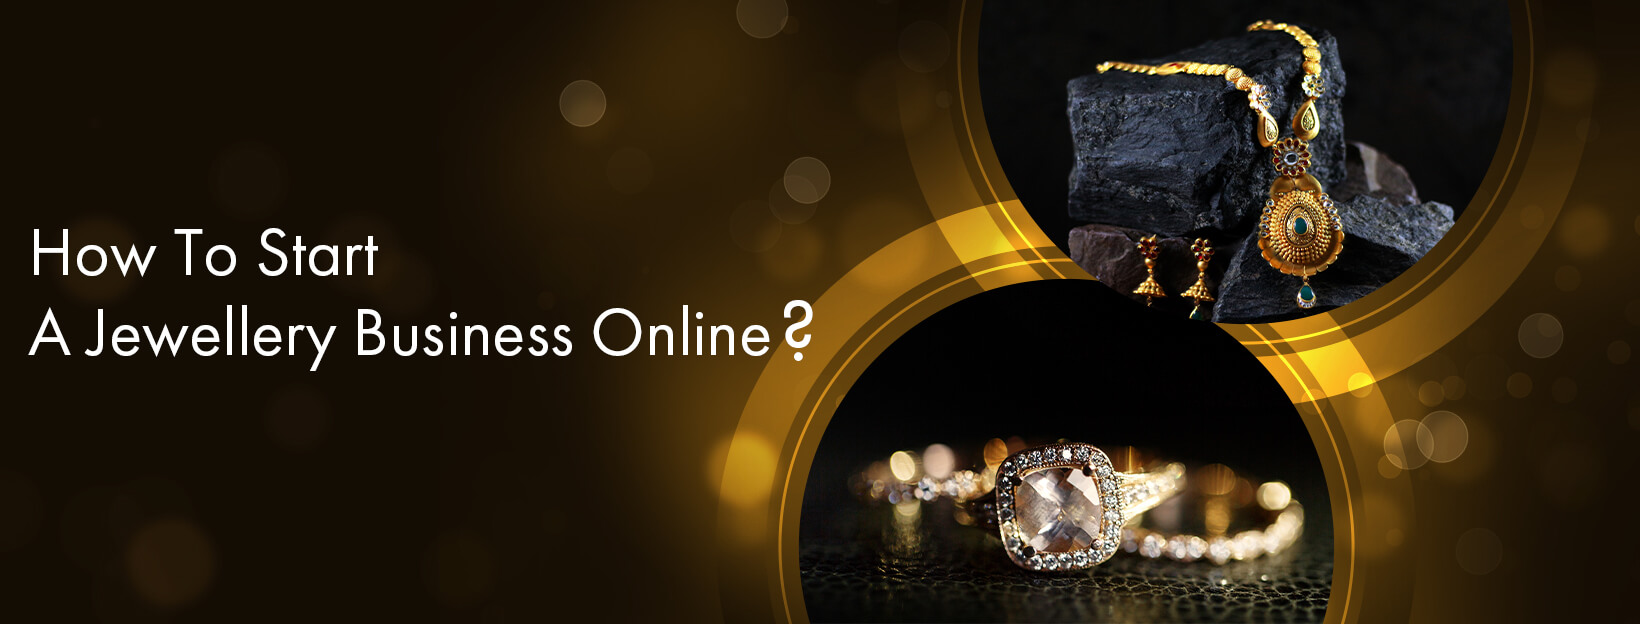 How To Start A Jewellery Business Online?